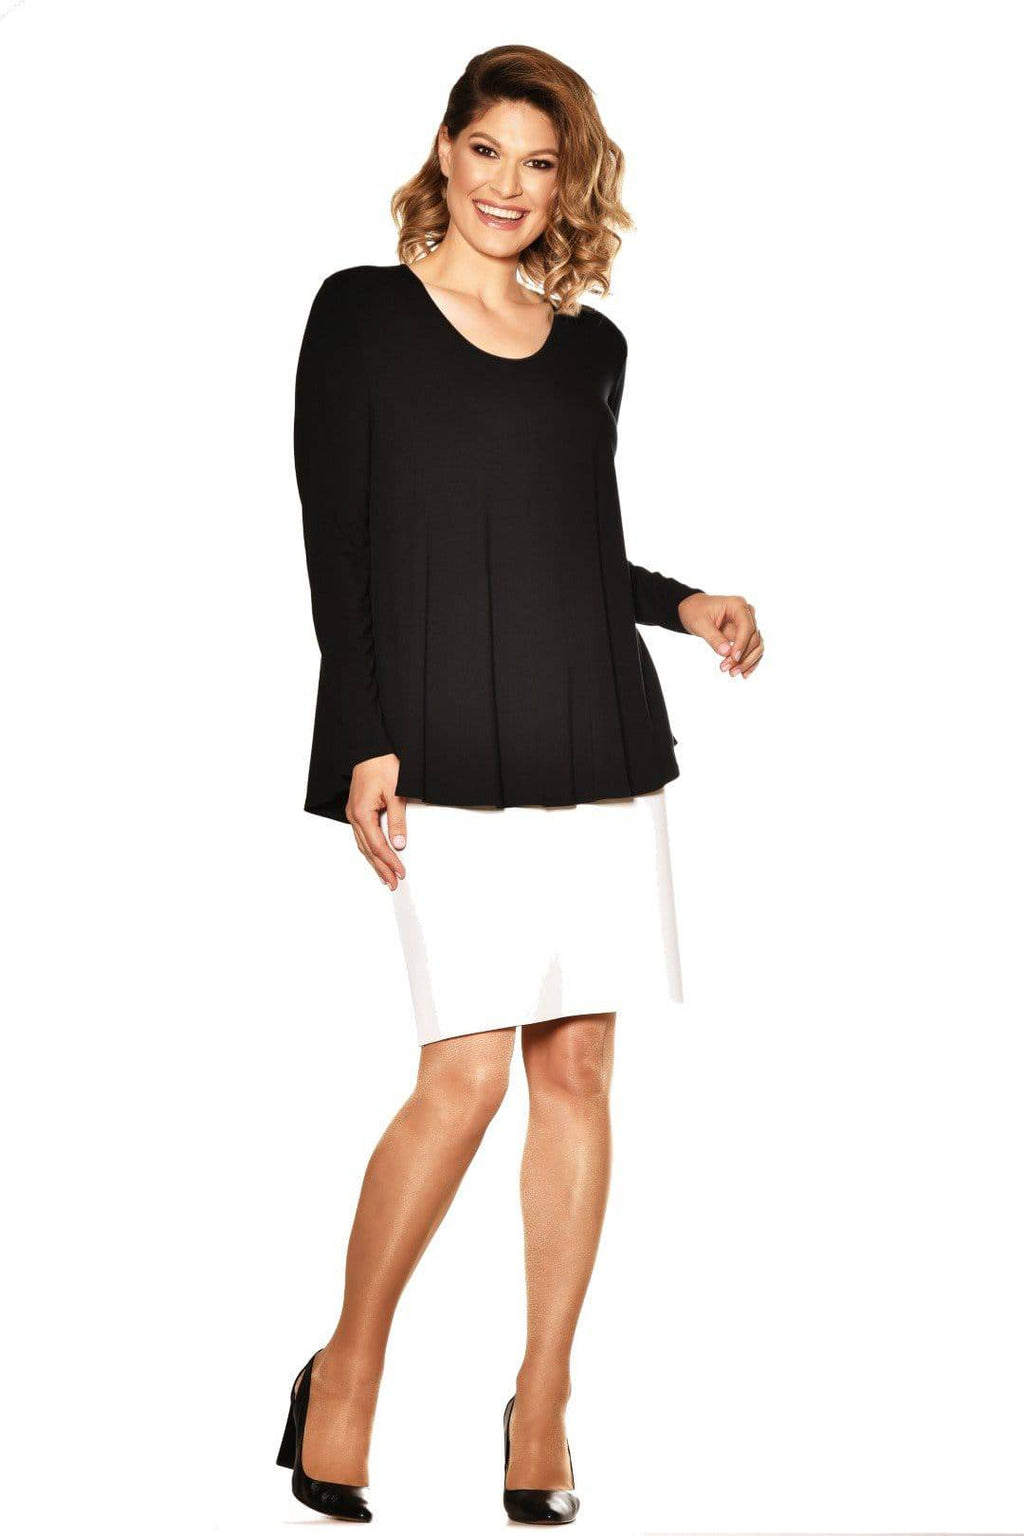 PAULA RYAN ESSENTIALS Scoop Neck Long Sleeve Swing Tunic - MicroModal - Paula Ryan